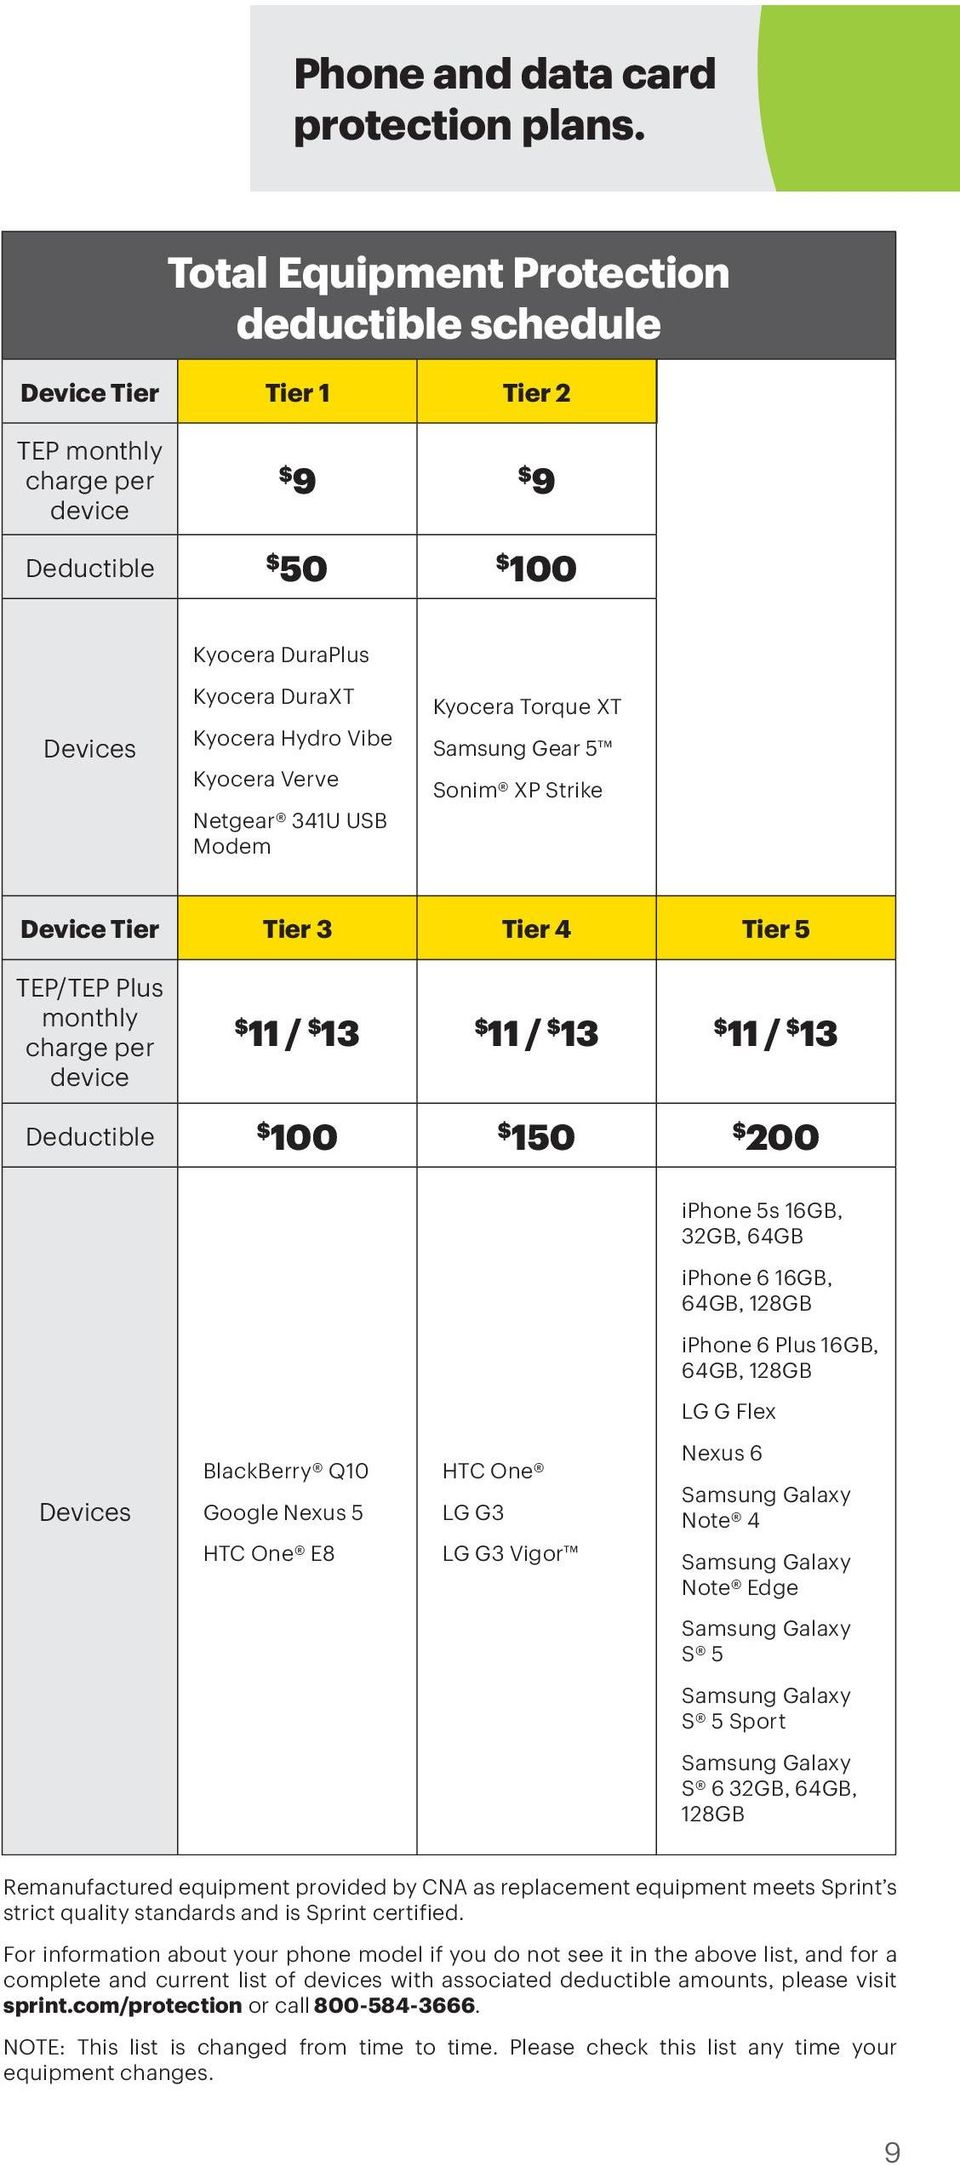 Verve Netgear 341U USB Modem Kyocera Torque XT Samsung Gear 5 Sonim XP Strike Device Tier Tier 3 Tier 4 Tier 5 TEP/TEP Plus monthly charge per device $ 11 / $ 13 $ 11 / $ 13 $ 11 / $ 13 Deductible $